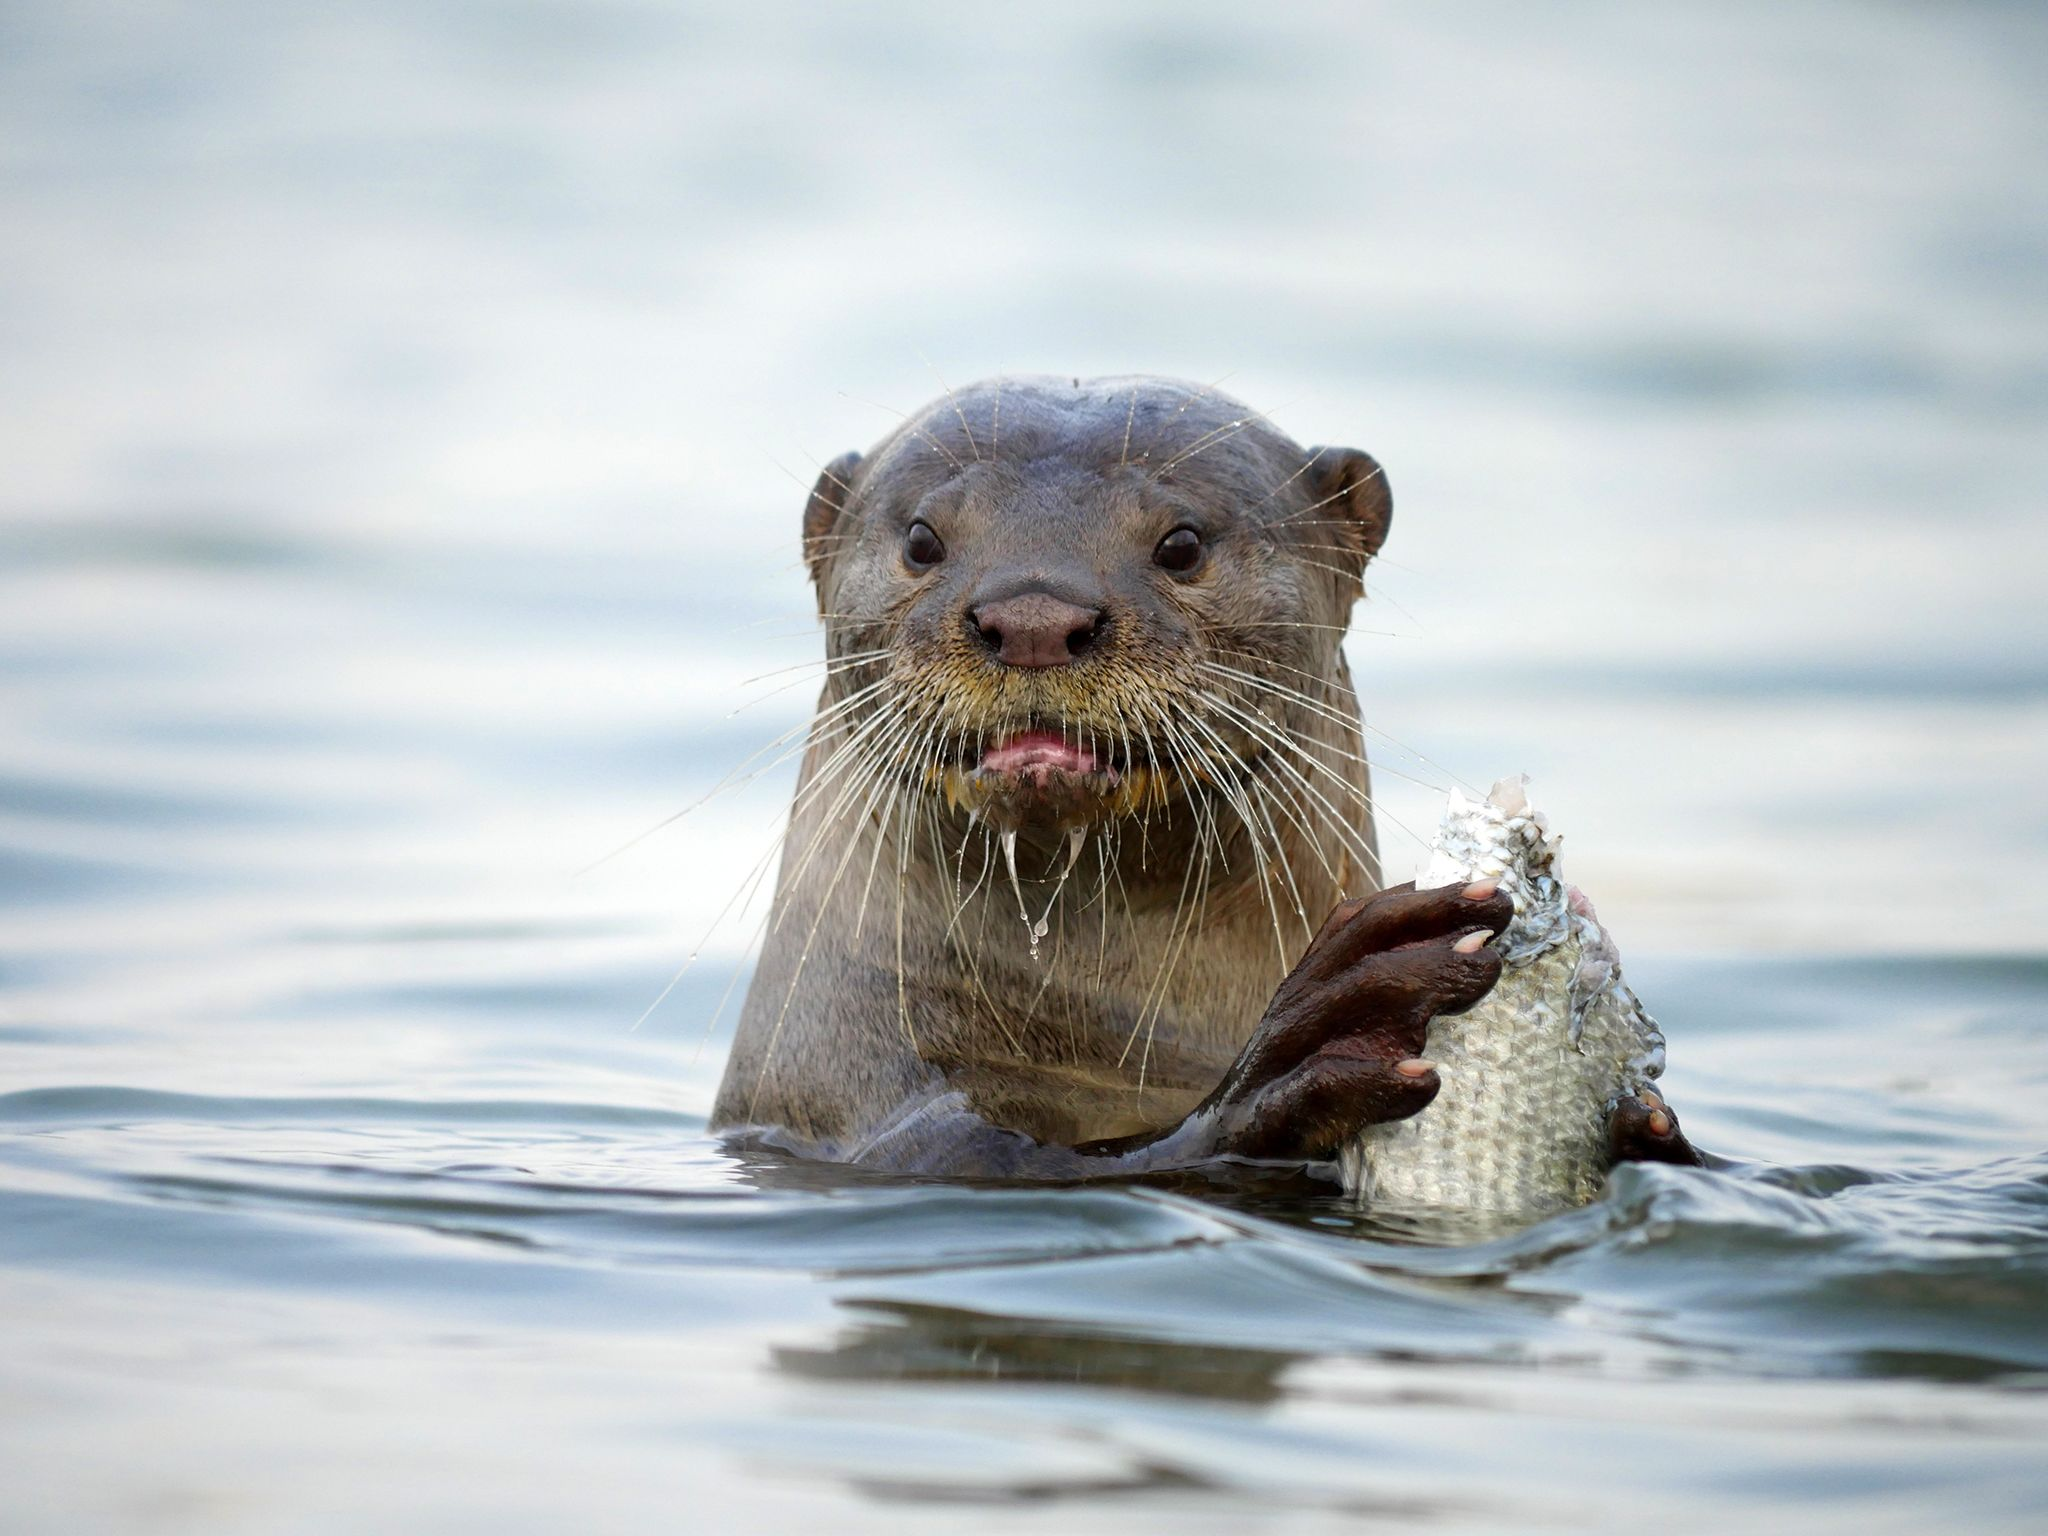 Singapore: An otter in the midst of his meal. This image is from Otter Town. [Photo of the day - سپتامبر 2016]